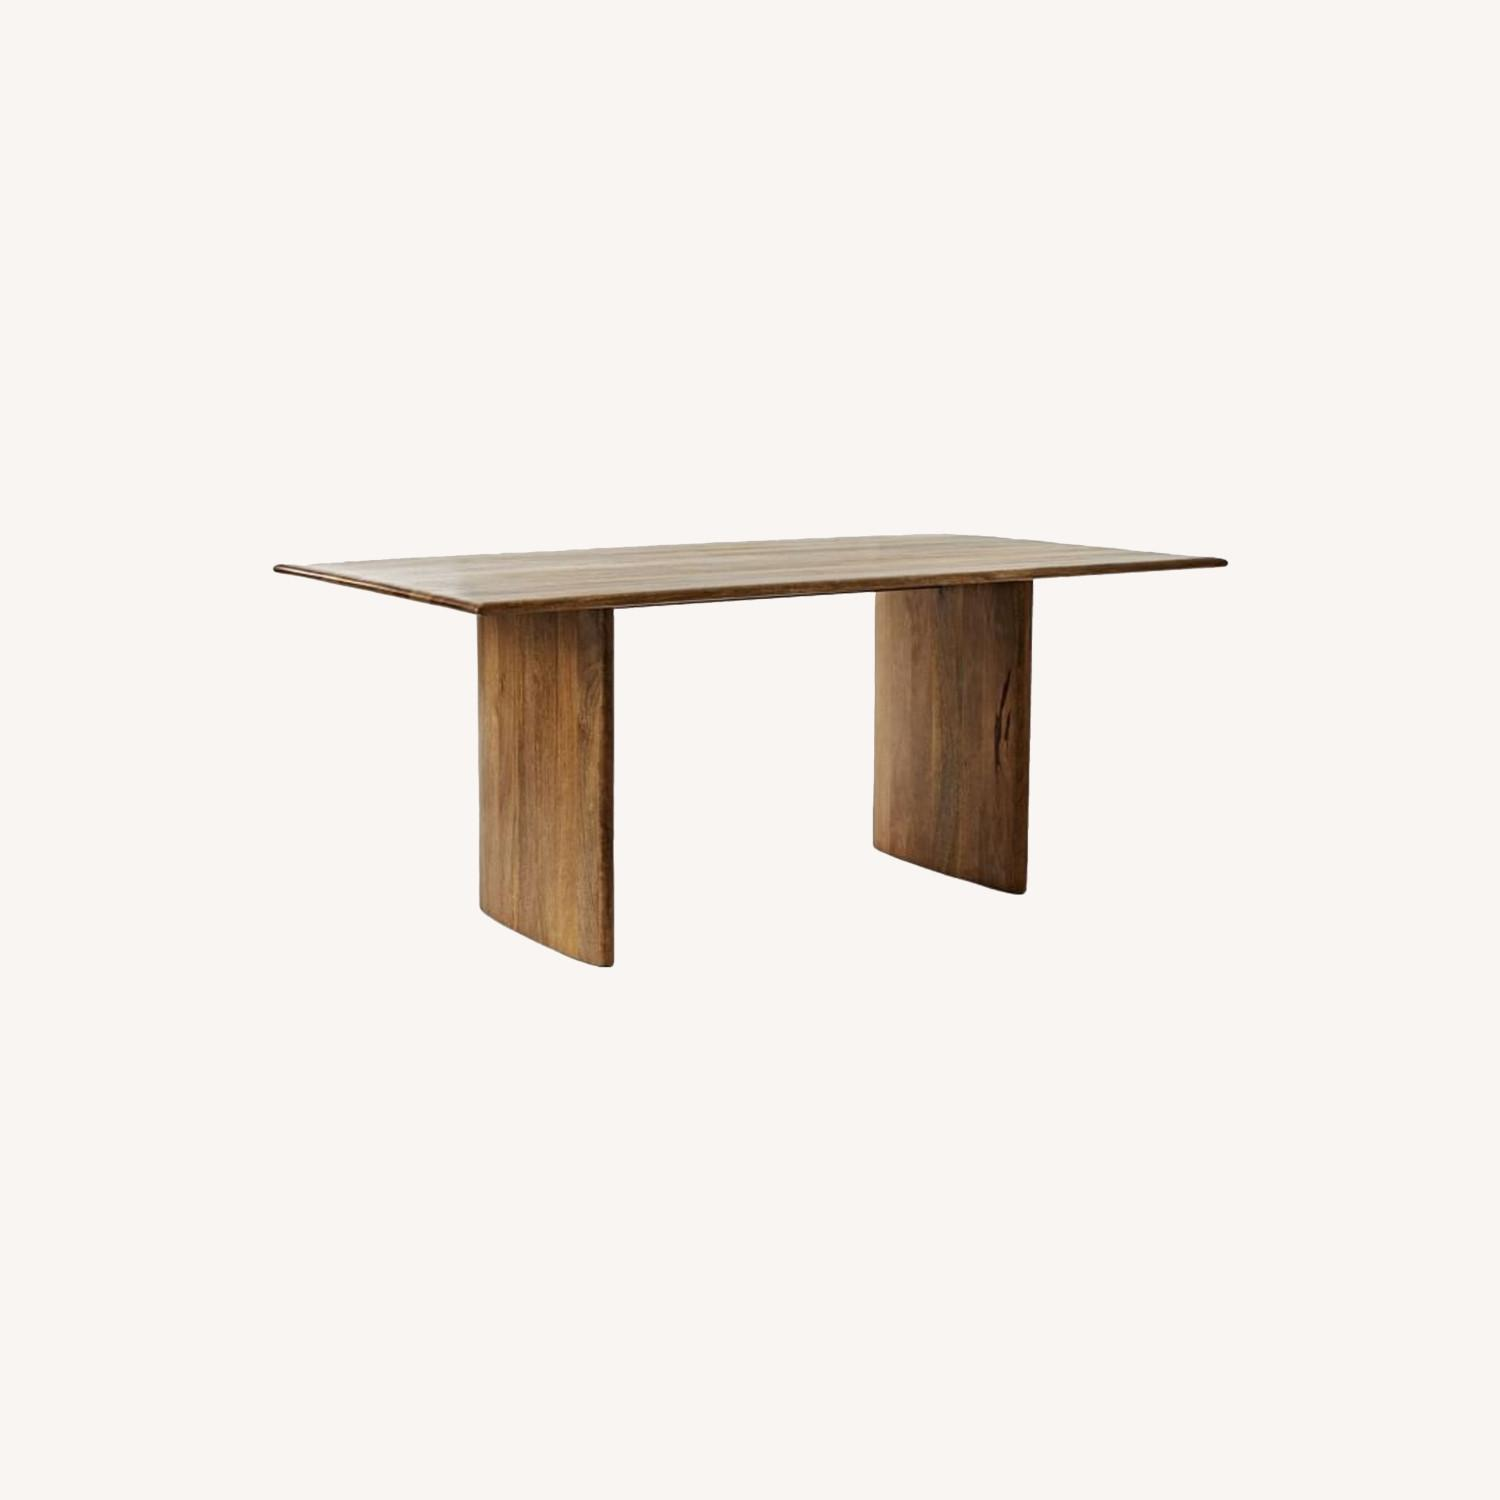 West Elm Anton Solid Wood Dining Table - image-0